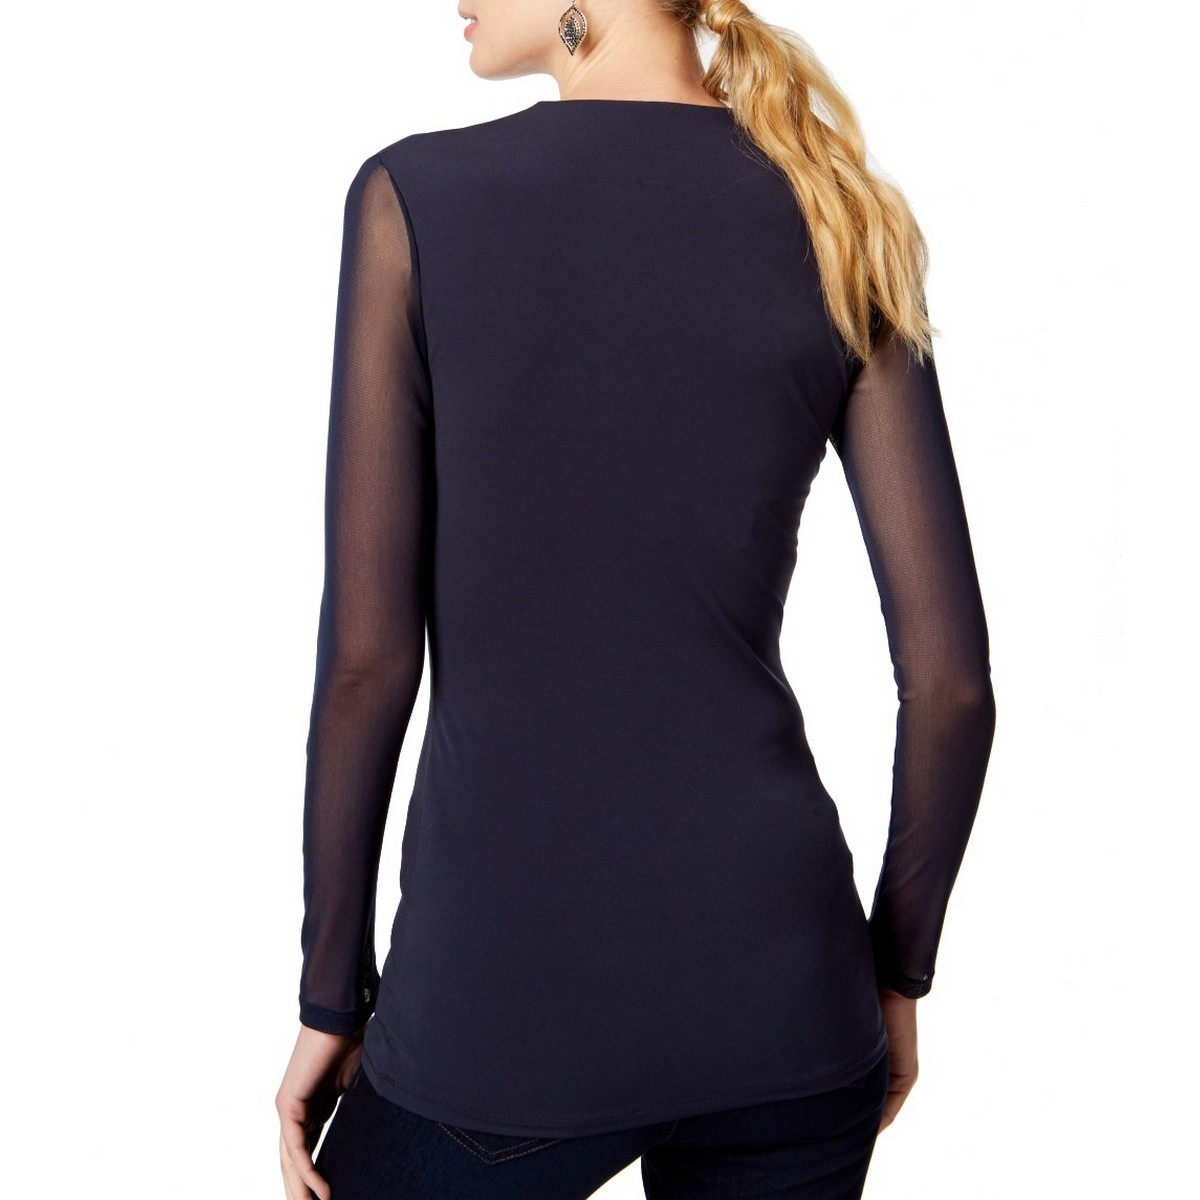 INC-NEW-Women-039-s-Illusion-Sleeve-V-Neck-Blouse-Shirt-Top-TEDO thumbnail 3